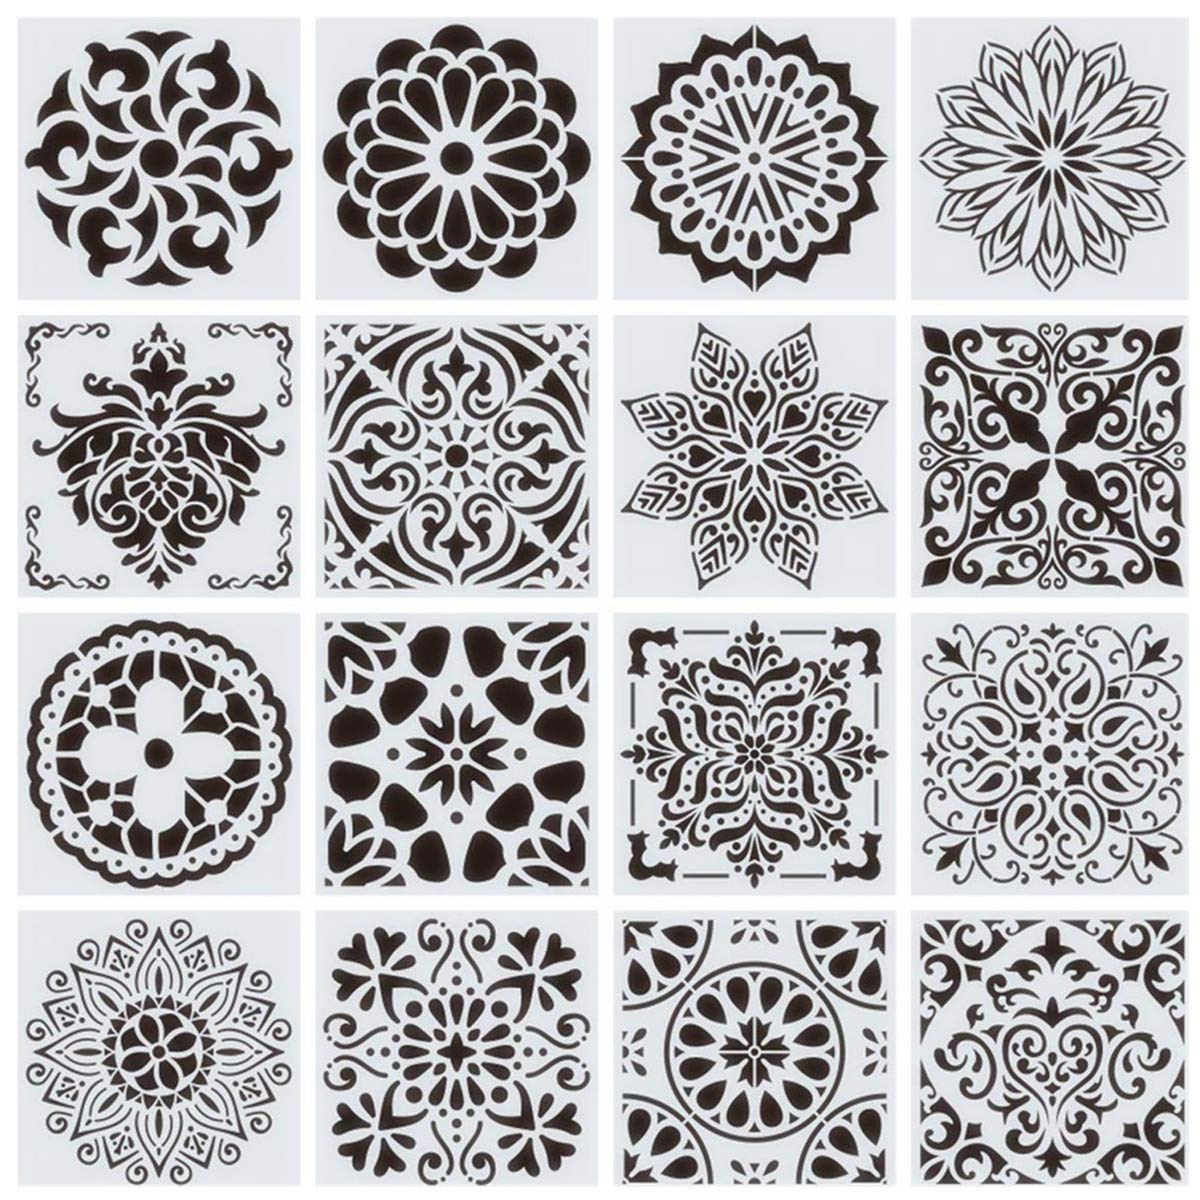 16-Pack (6x6Inch) Reusable Painting Stencils for Floor Wall Tile Fabric Furniture Wood Burning, Reusable Floor Stencil Painting Stencil